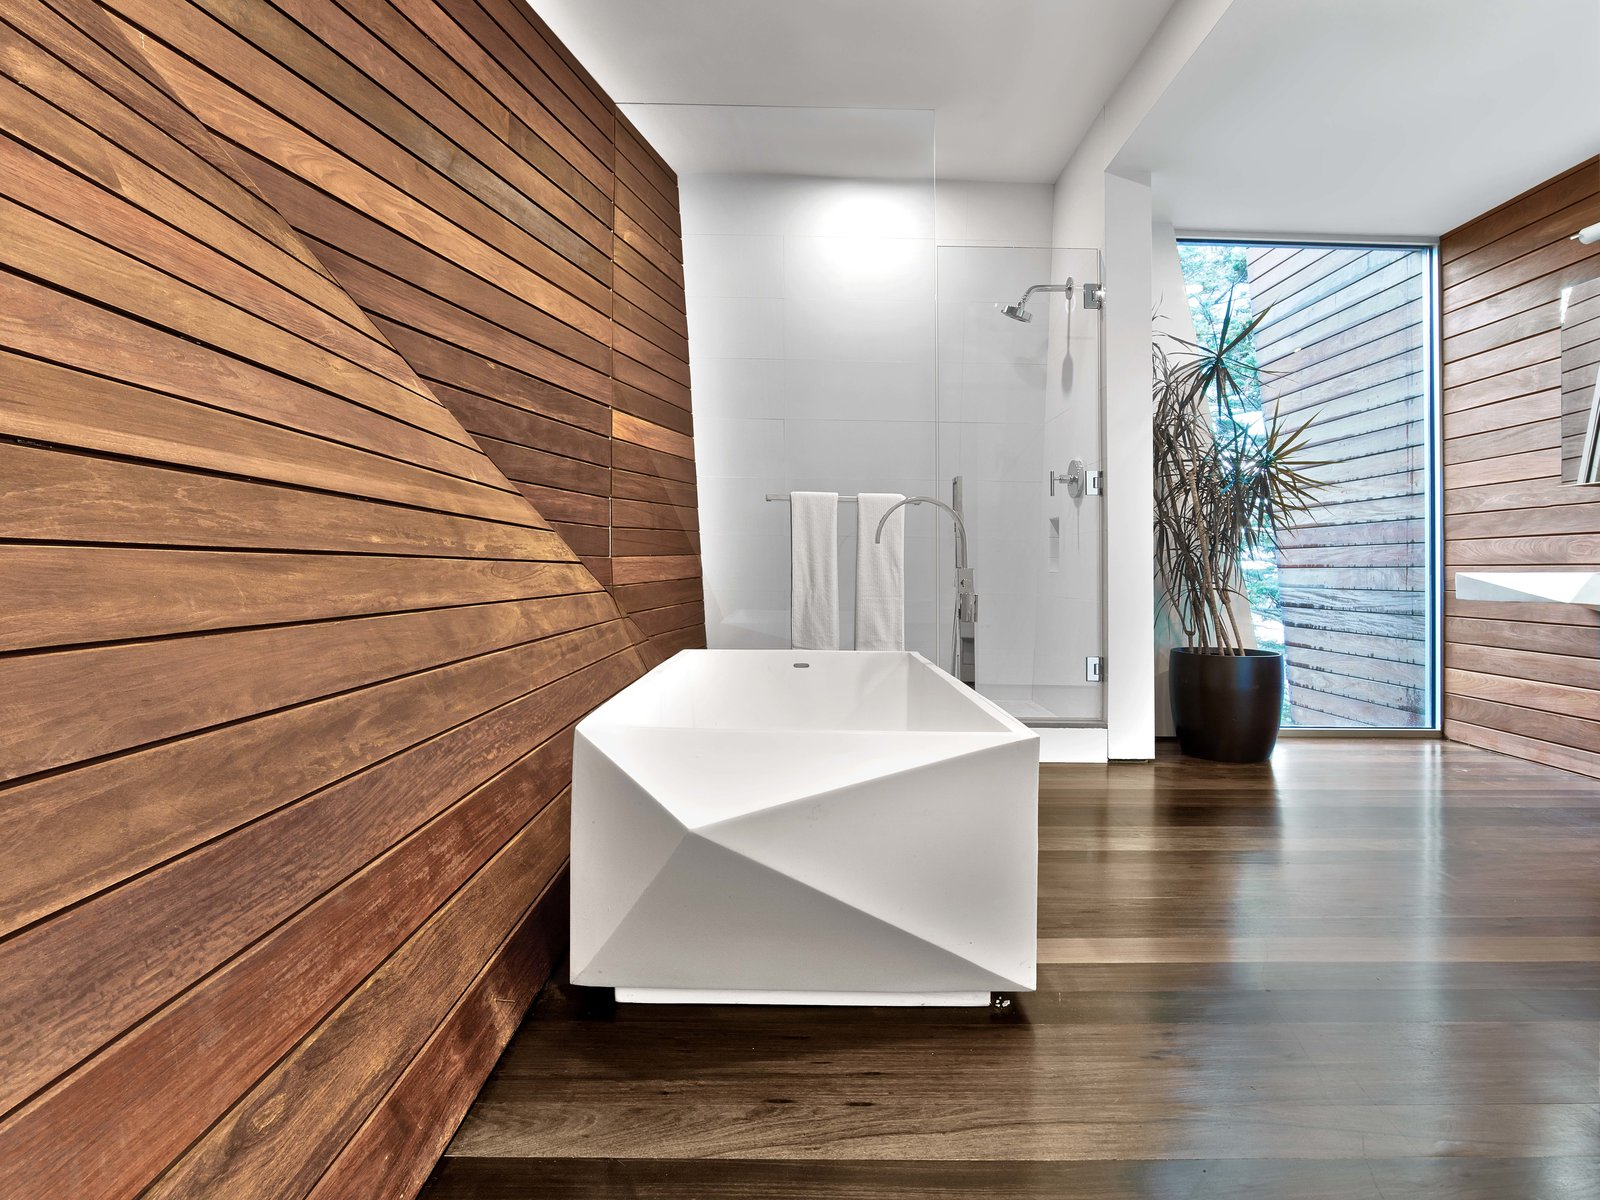 Tagged: Bath Room and Medium Hardwood Floor. Cape Cod - Beach House by Hariri & Hariri Architecture